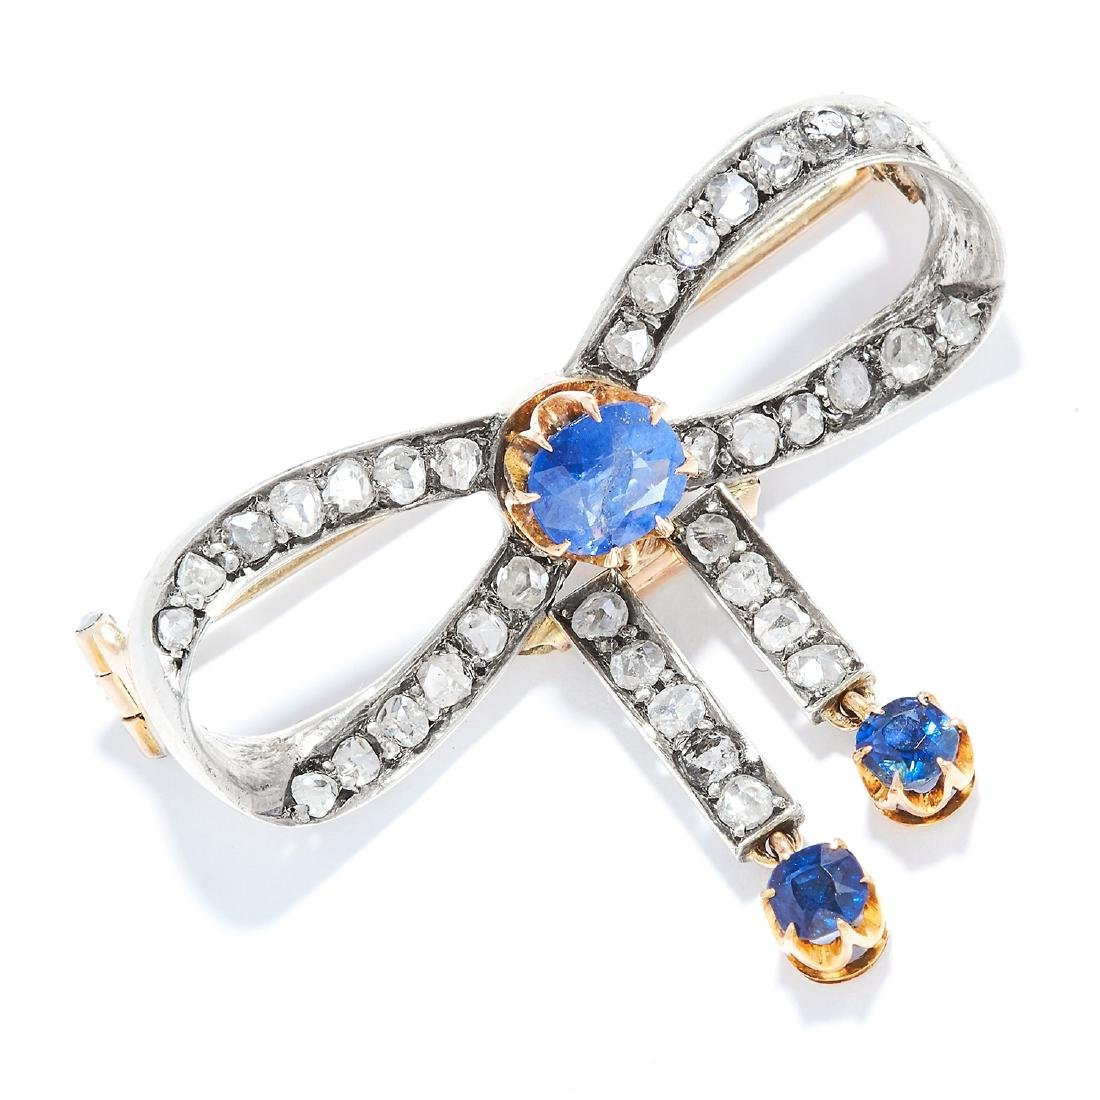 AN ANTIQUE SAPPHIRE AND DIAMOND BOW BROOCH in yellow